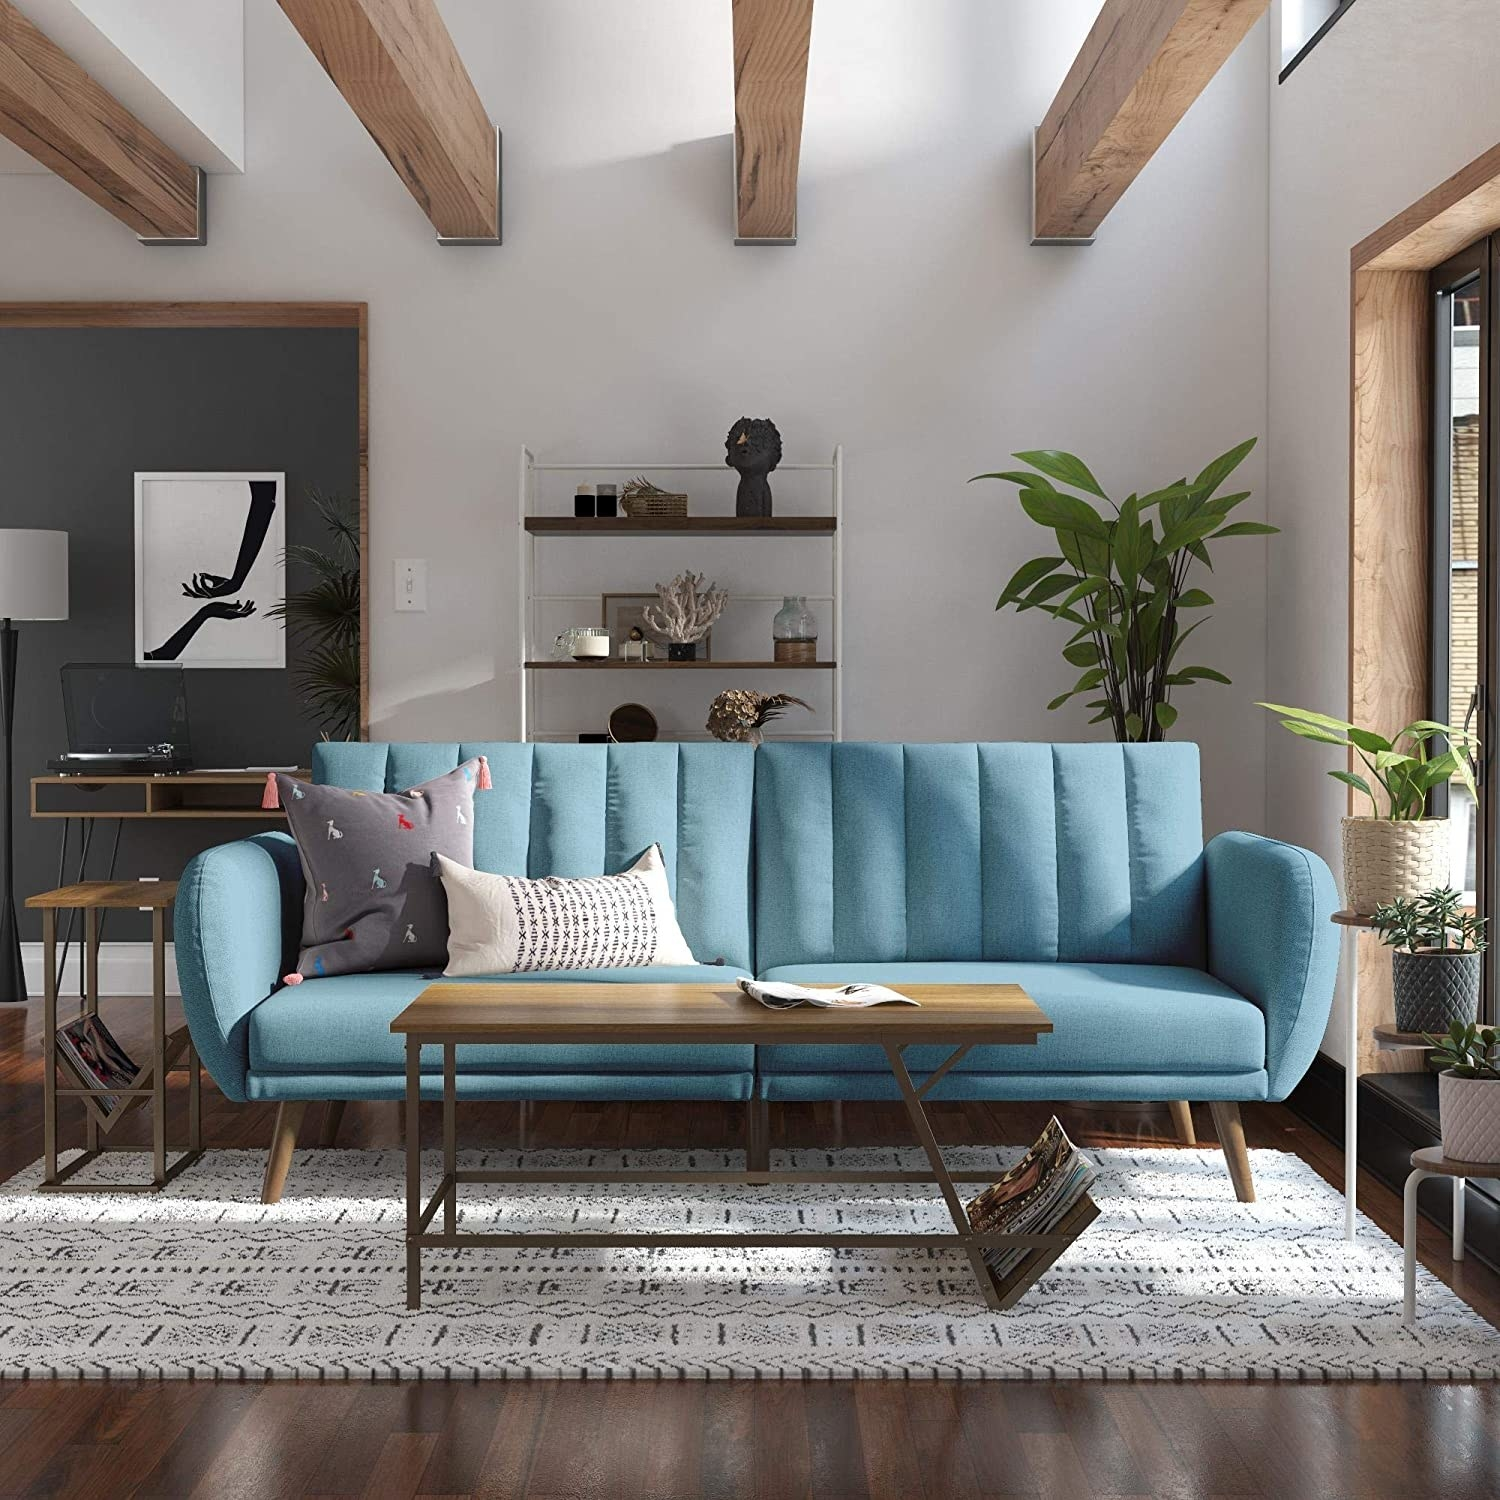 light blue vertically tufted couch